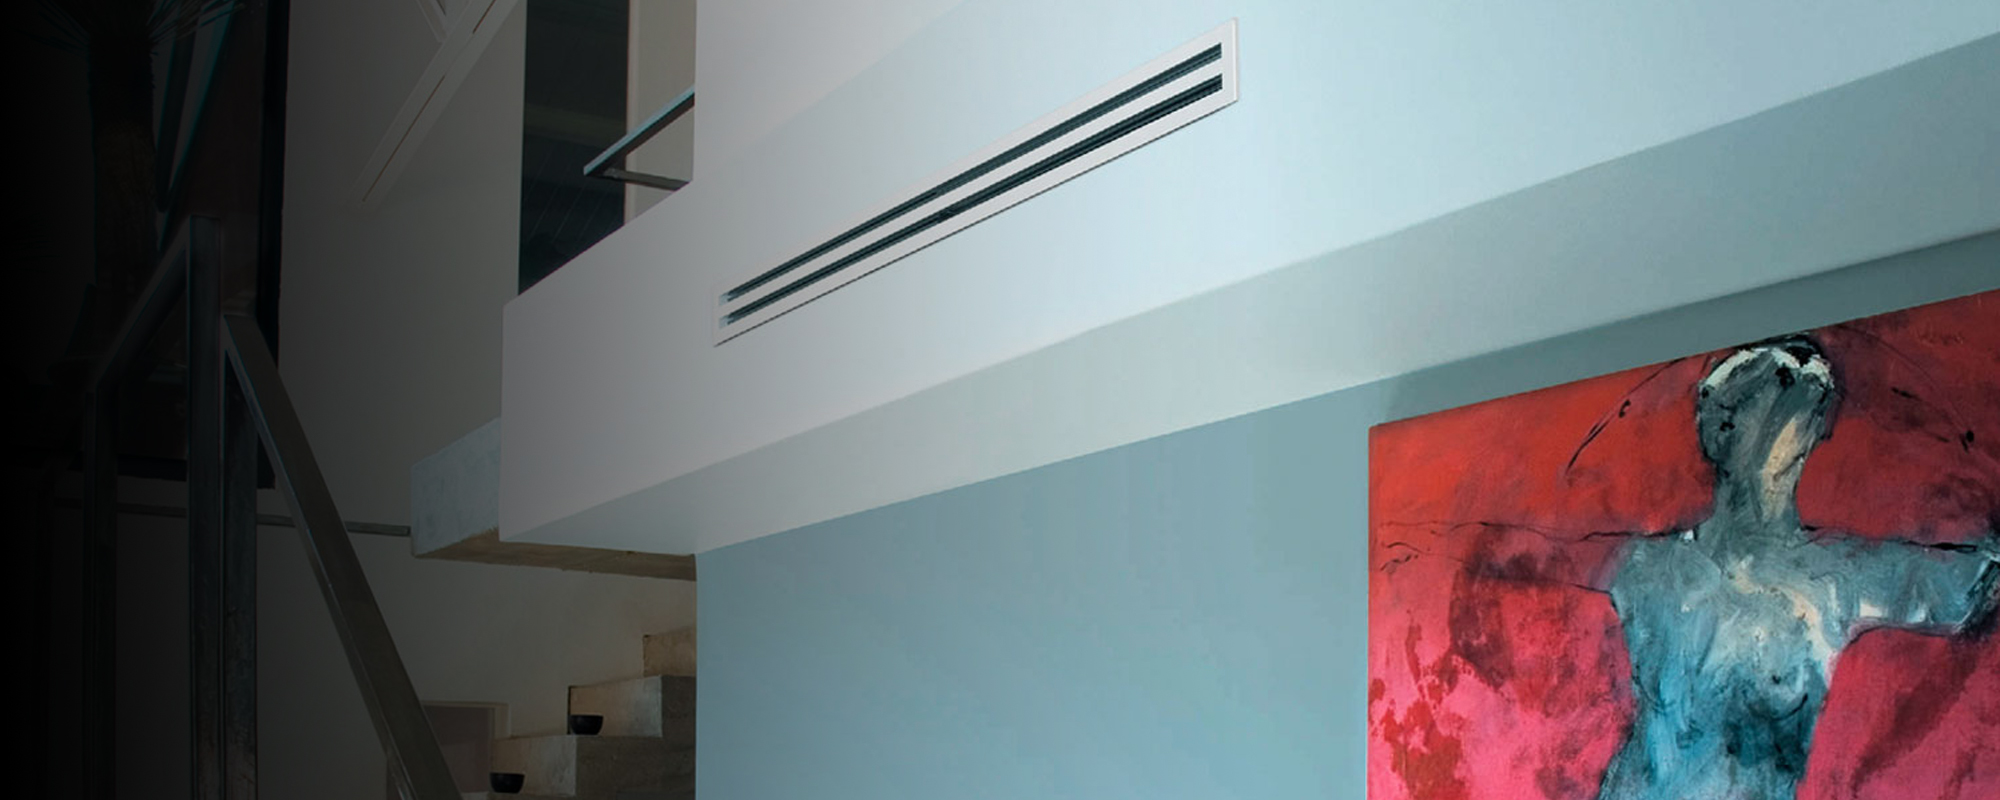 Ducted Systems Asset Air Conditioning